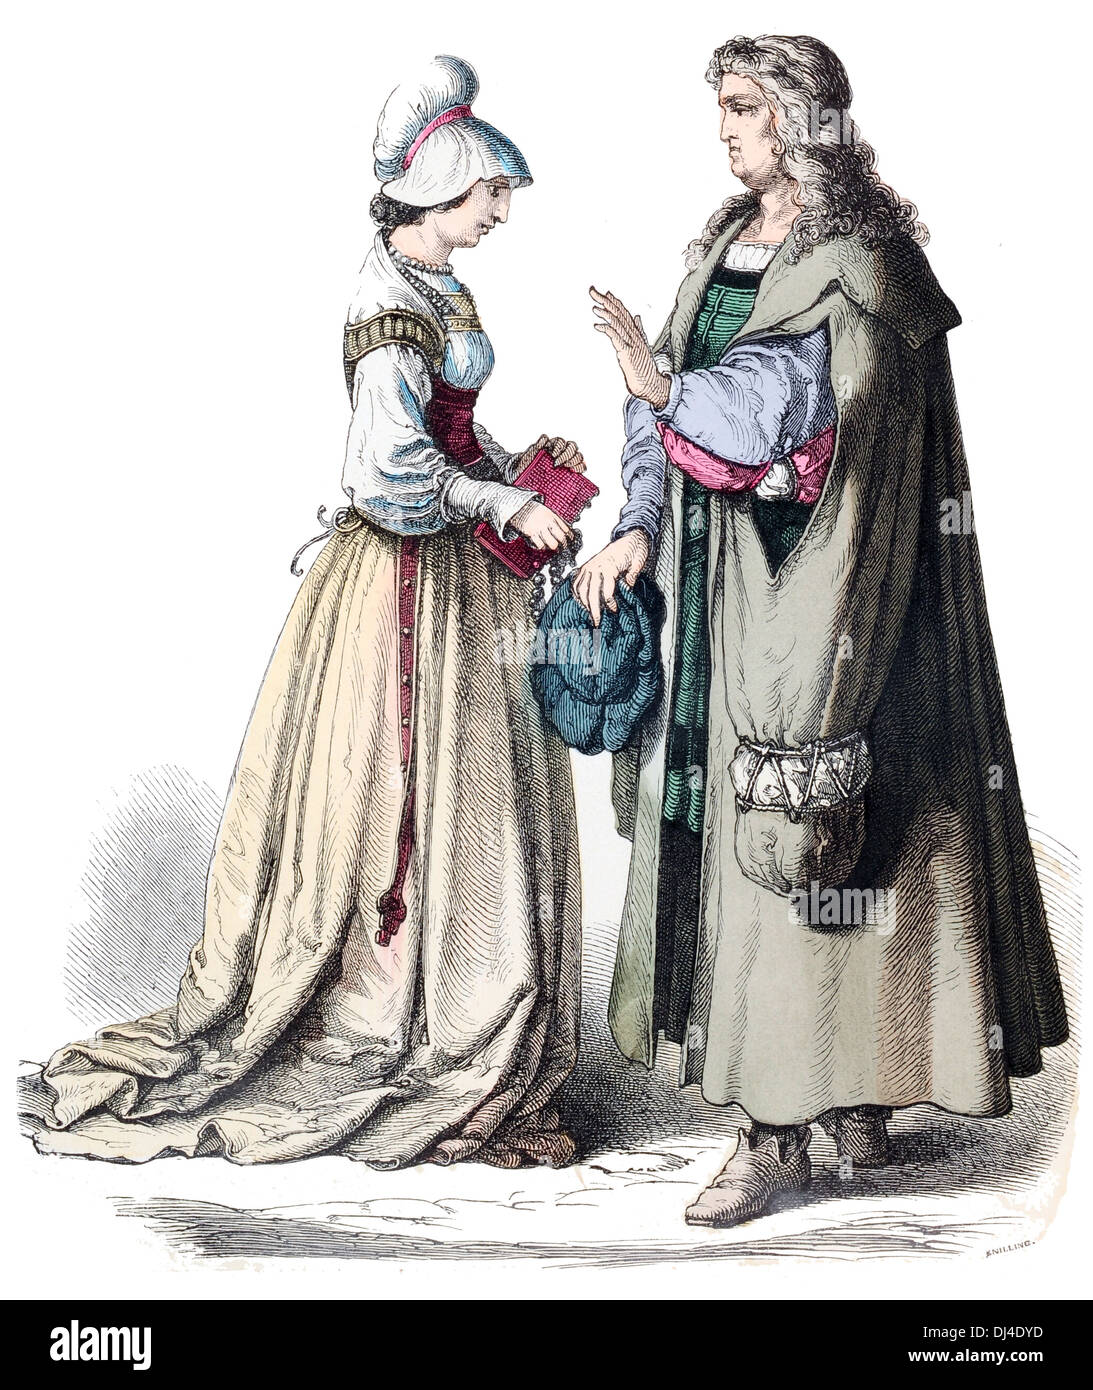 German 16th Century Scholar and townswoman - Stock Image